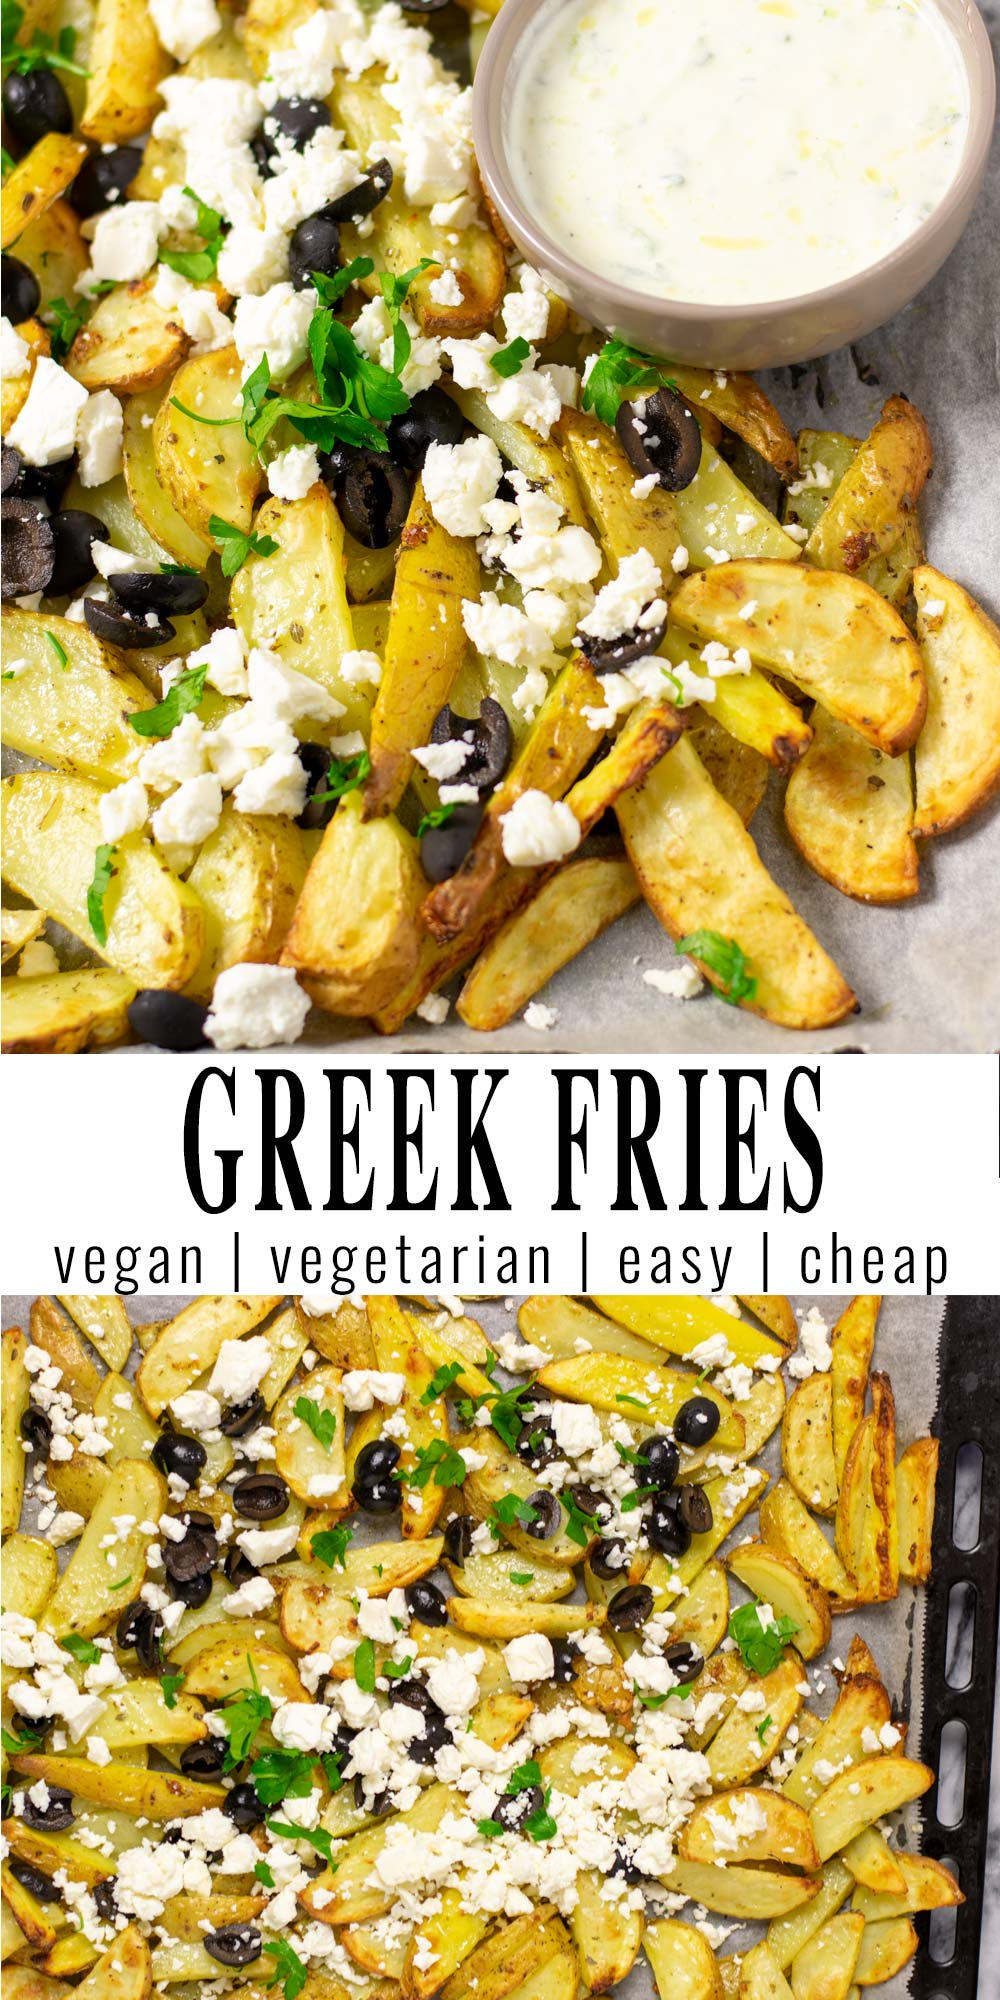 Collage of two pictures of the Green Fries with recipe title text.